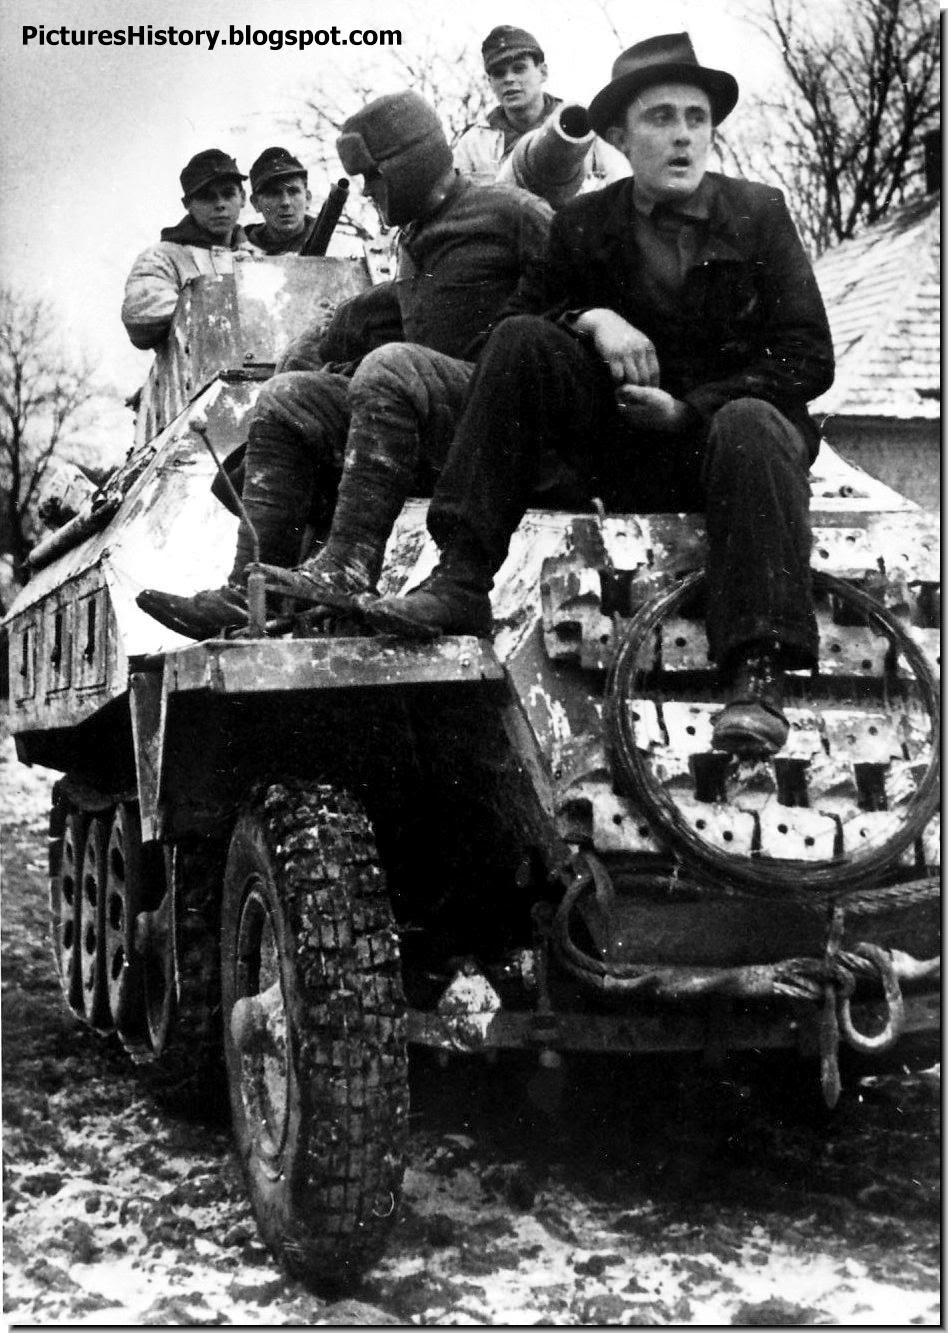 Waffen SS 4th SS panzer Corps operation conrad hungary 1945